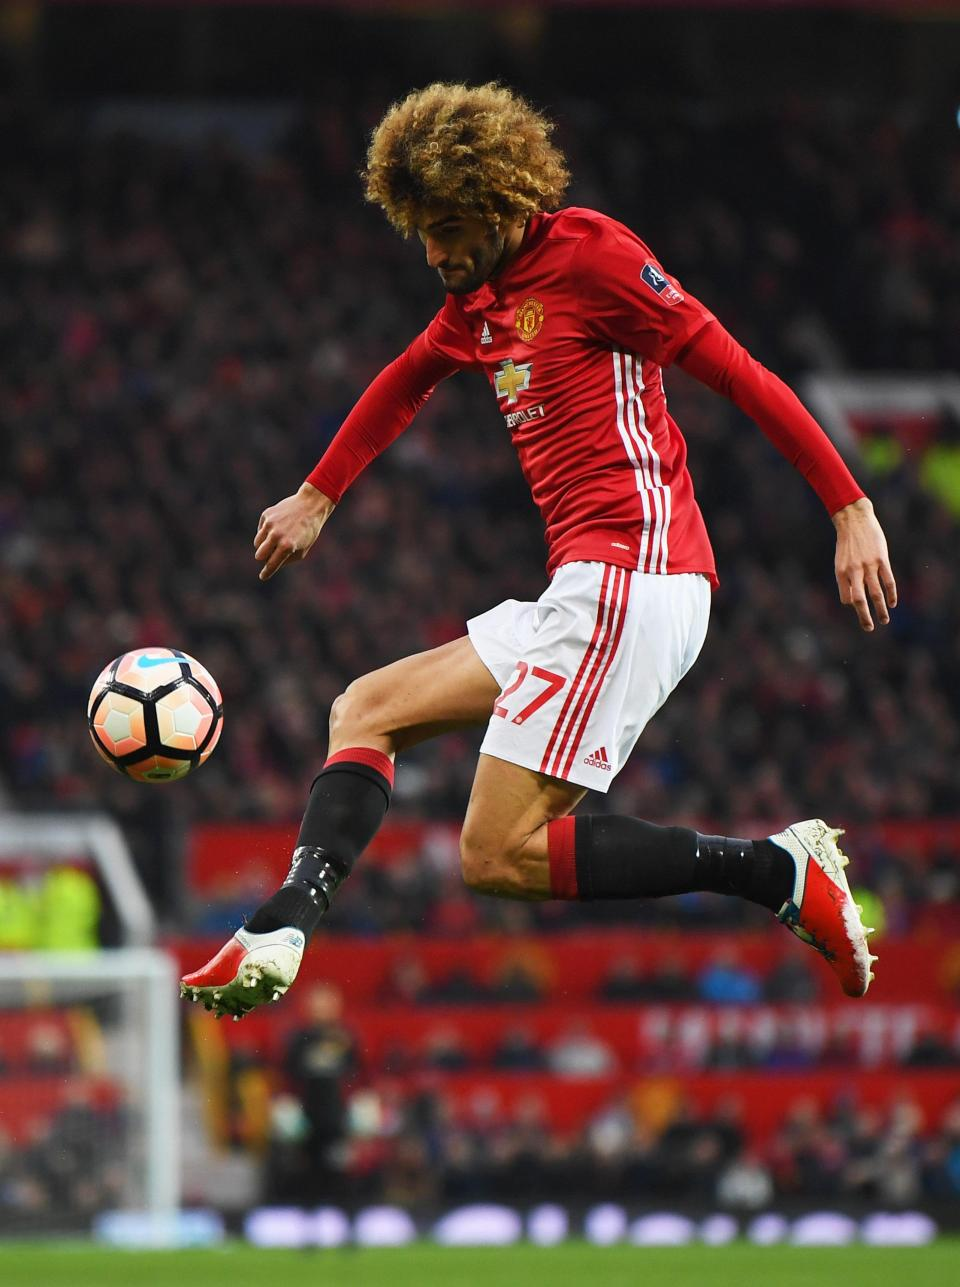 Marouane Fellaini is suing New Balance for £2.1million because he claims their boots hurt his feet